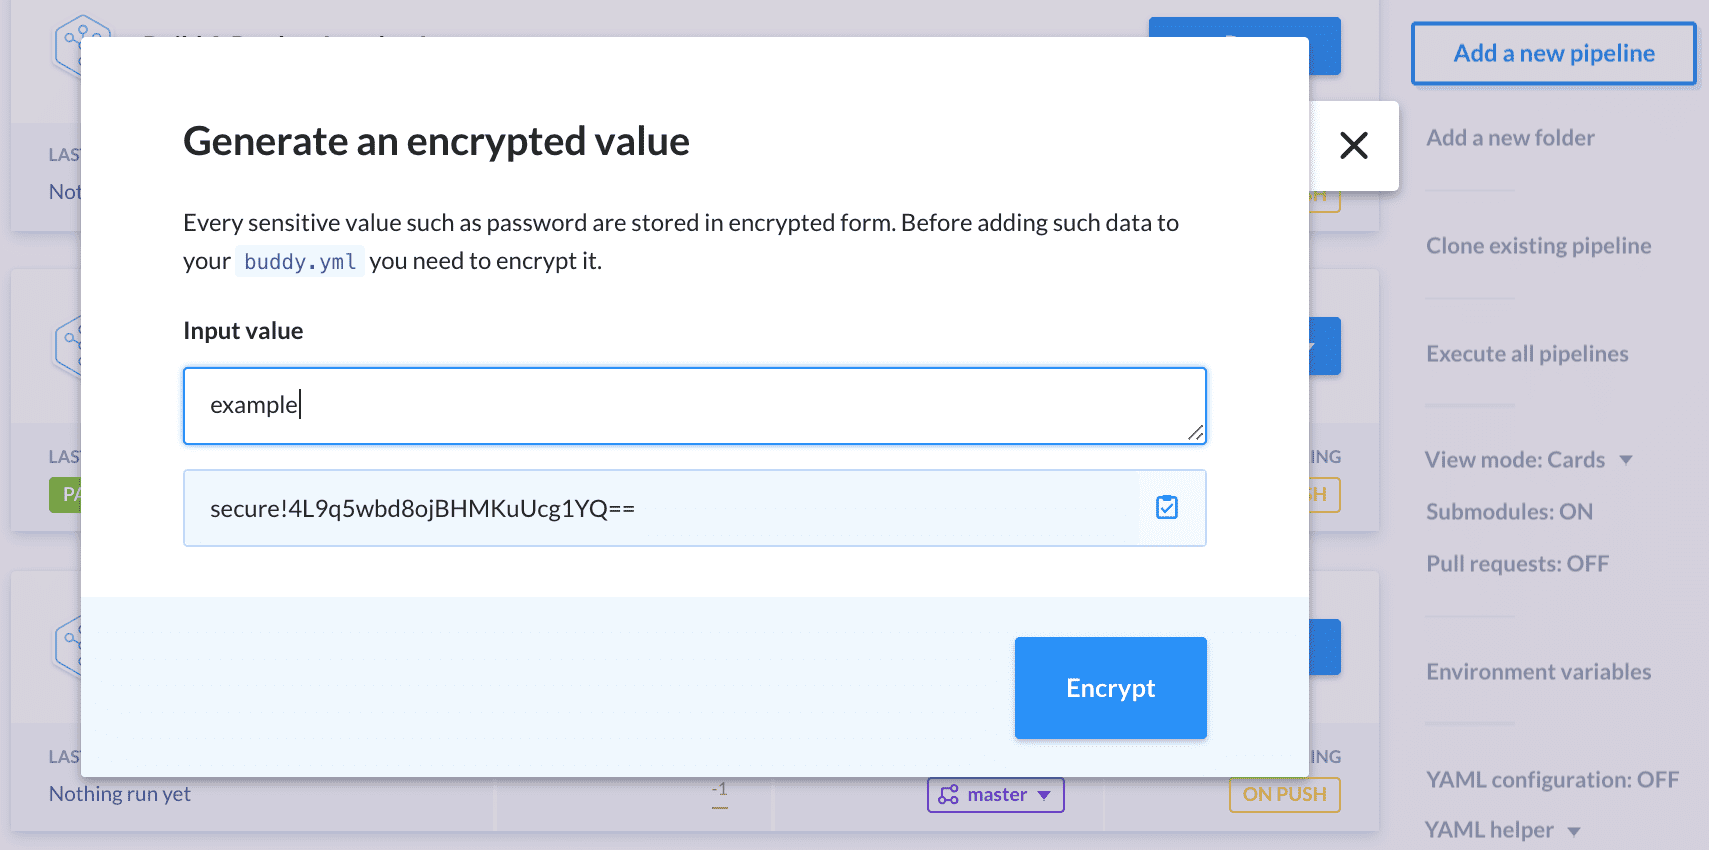 Setting a new encrypted value